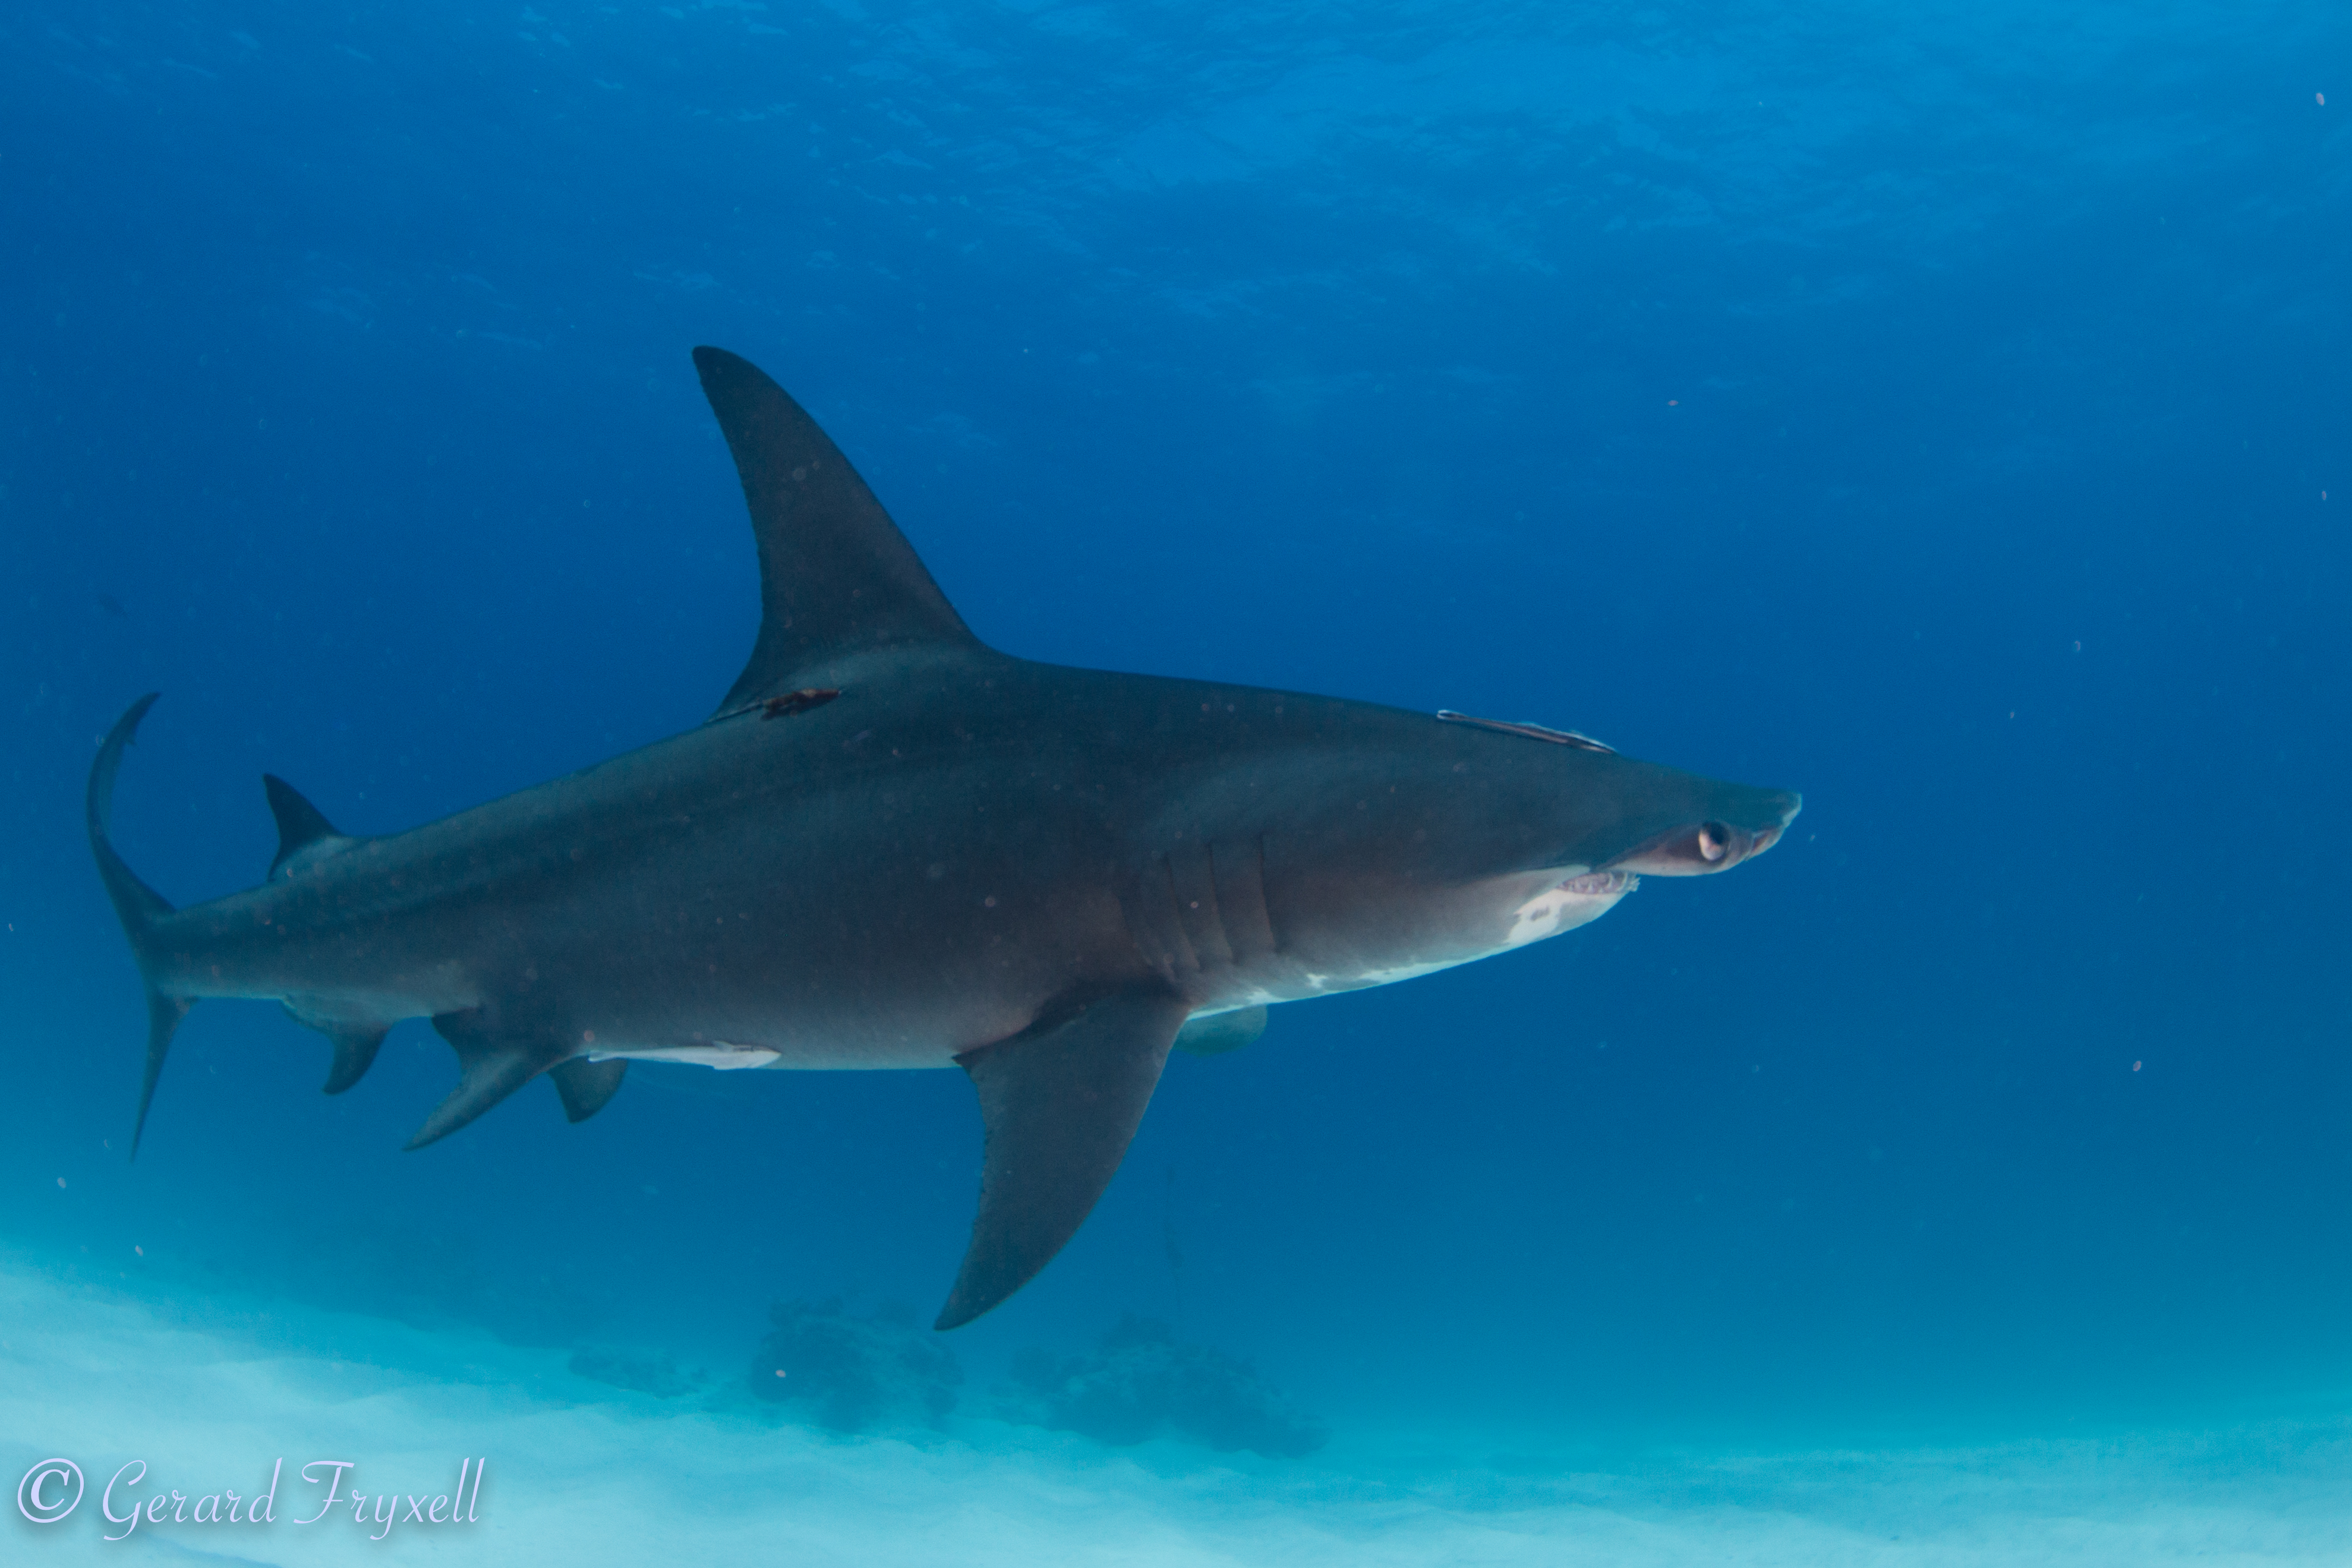 To Cull or Not to Cull: Determining Attitudes Towards Shark Mitigation Strategies